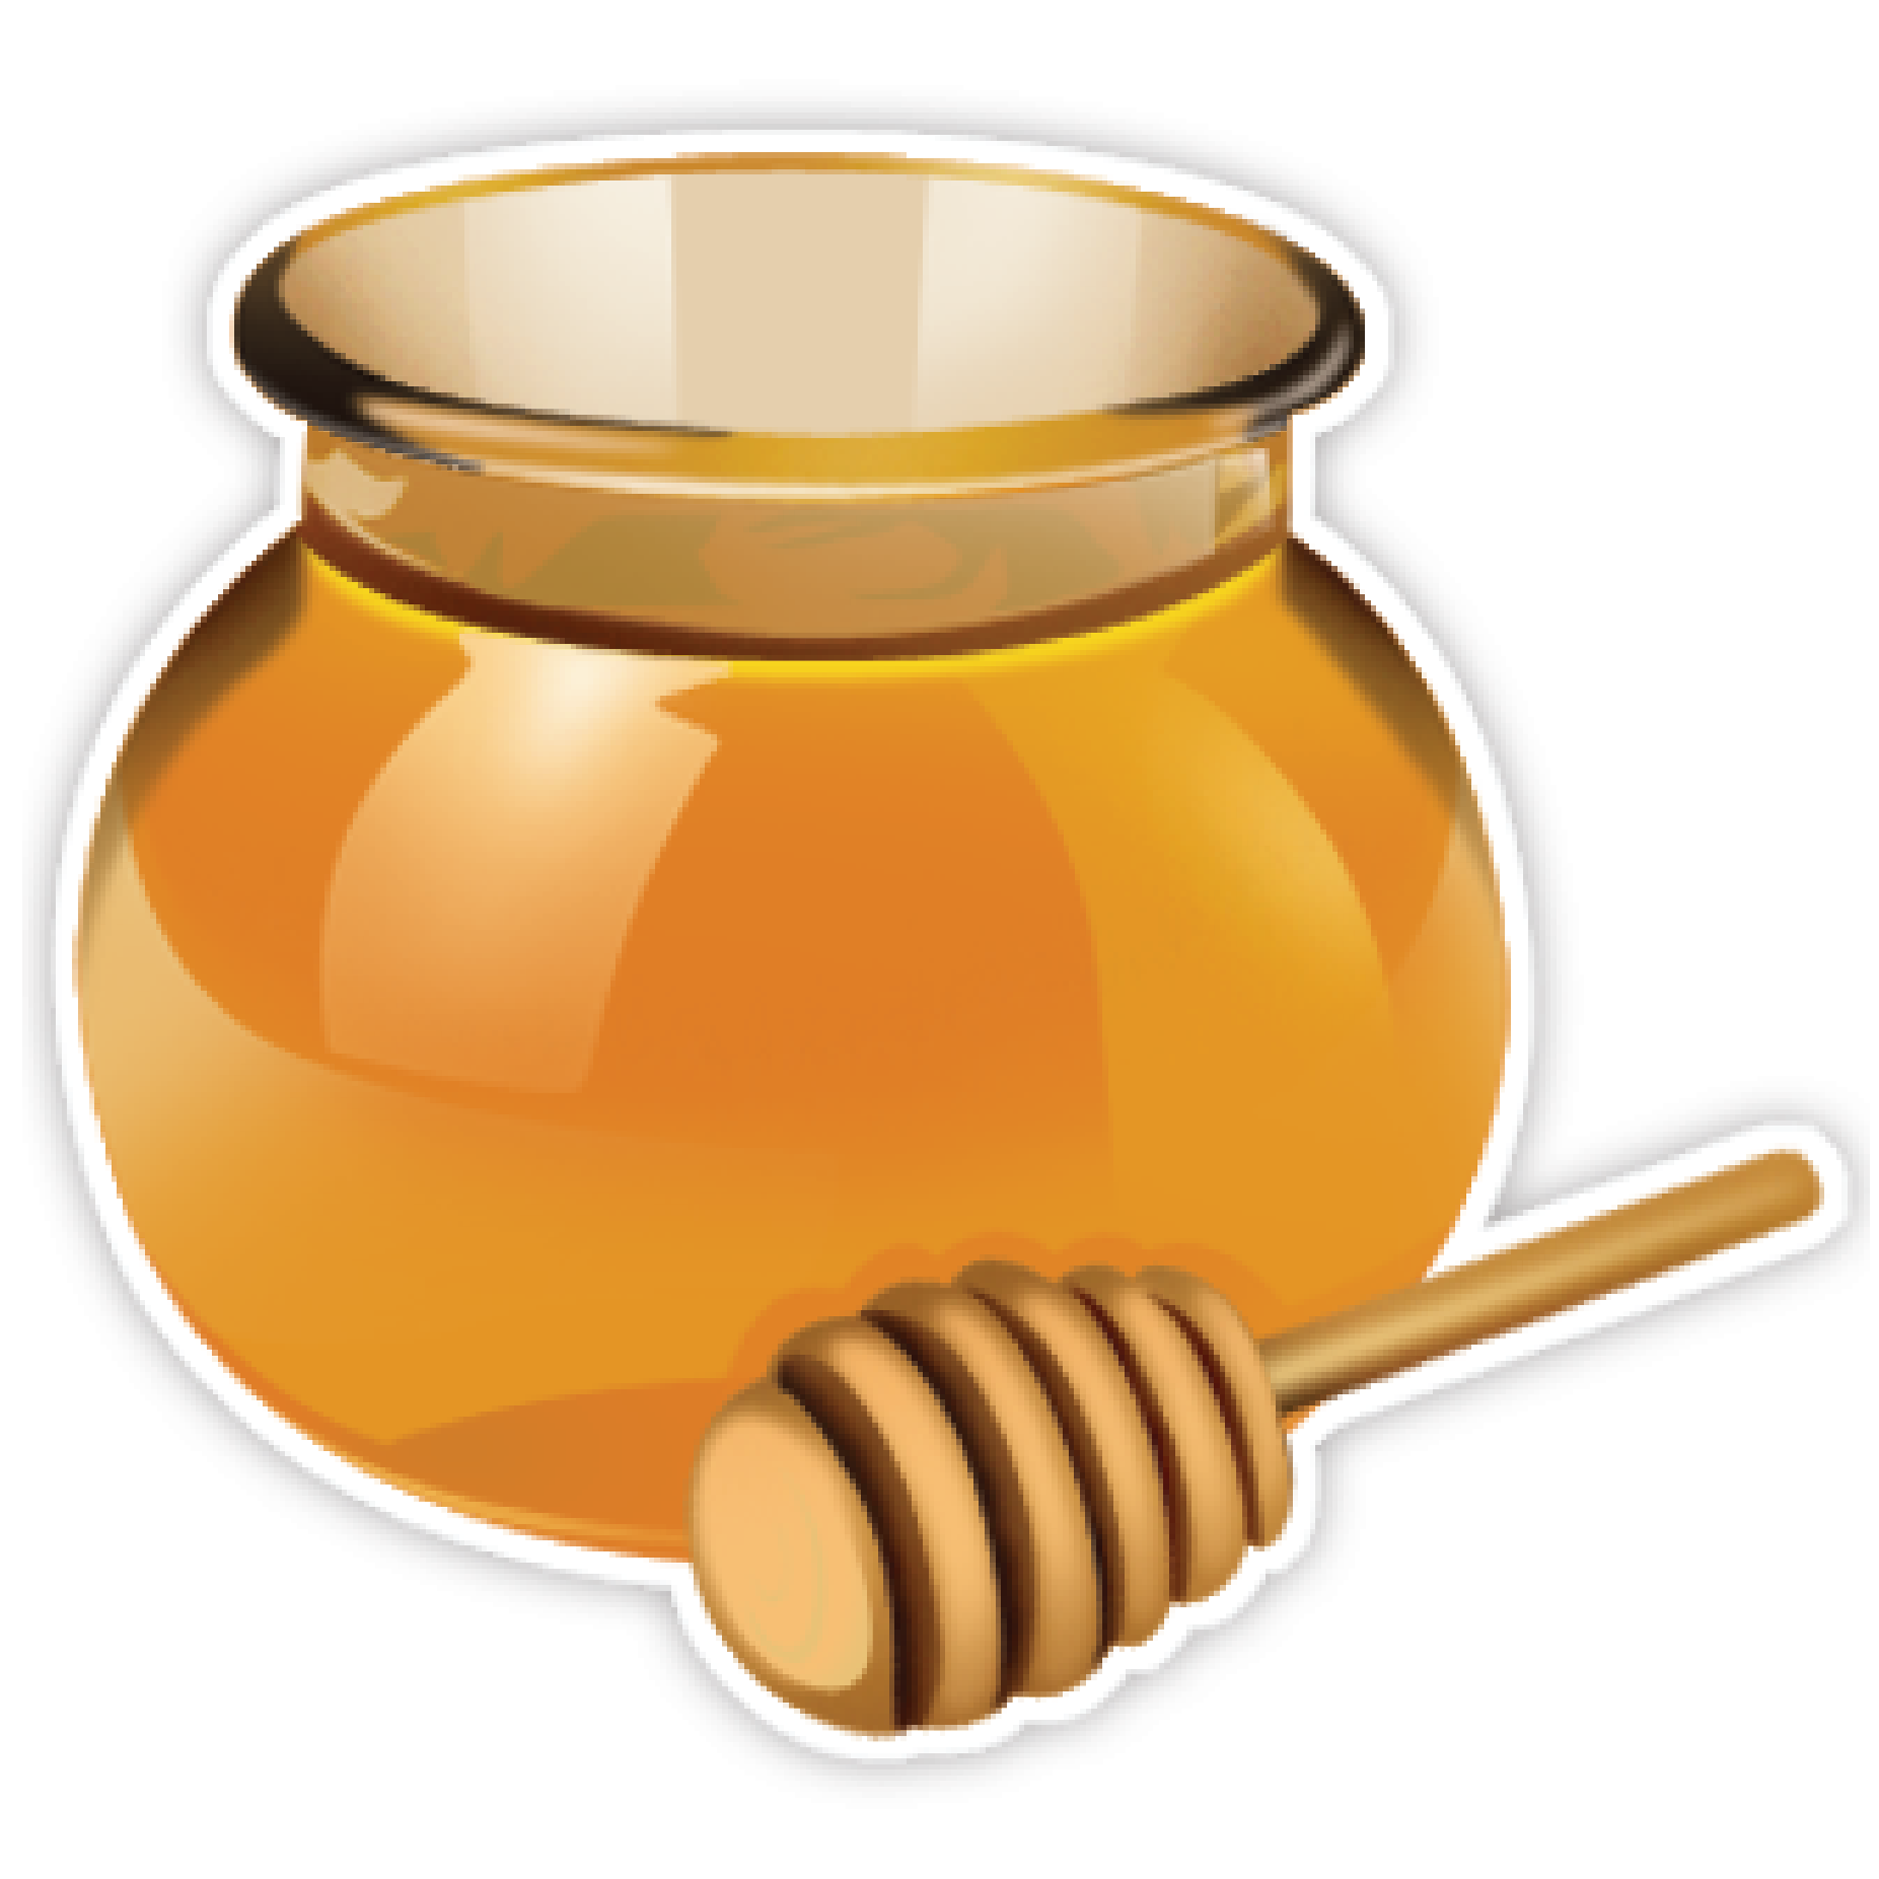 Honey Clipart. - Honey Clipart